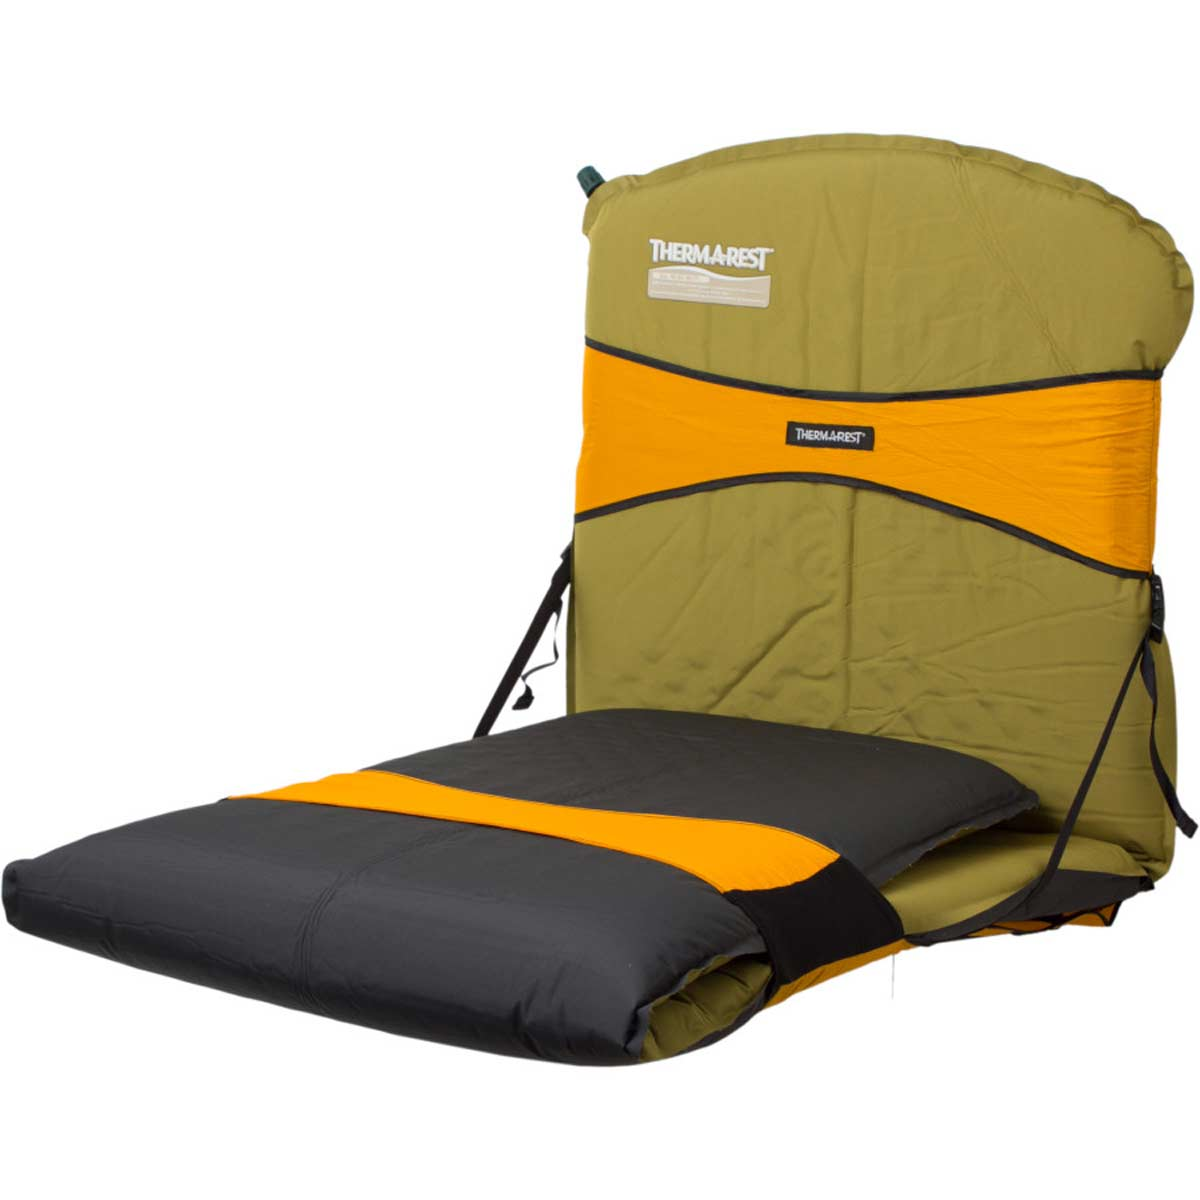 Therm-A-Rest Trekker Chair Kit to use with the sleepind pad